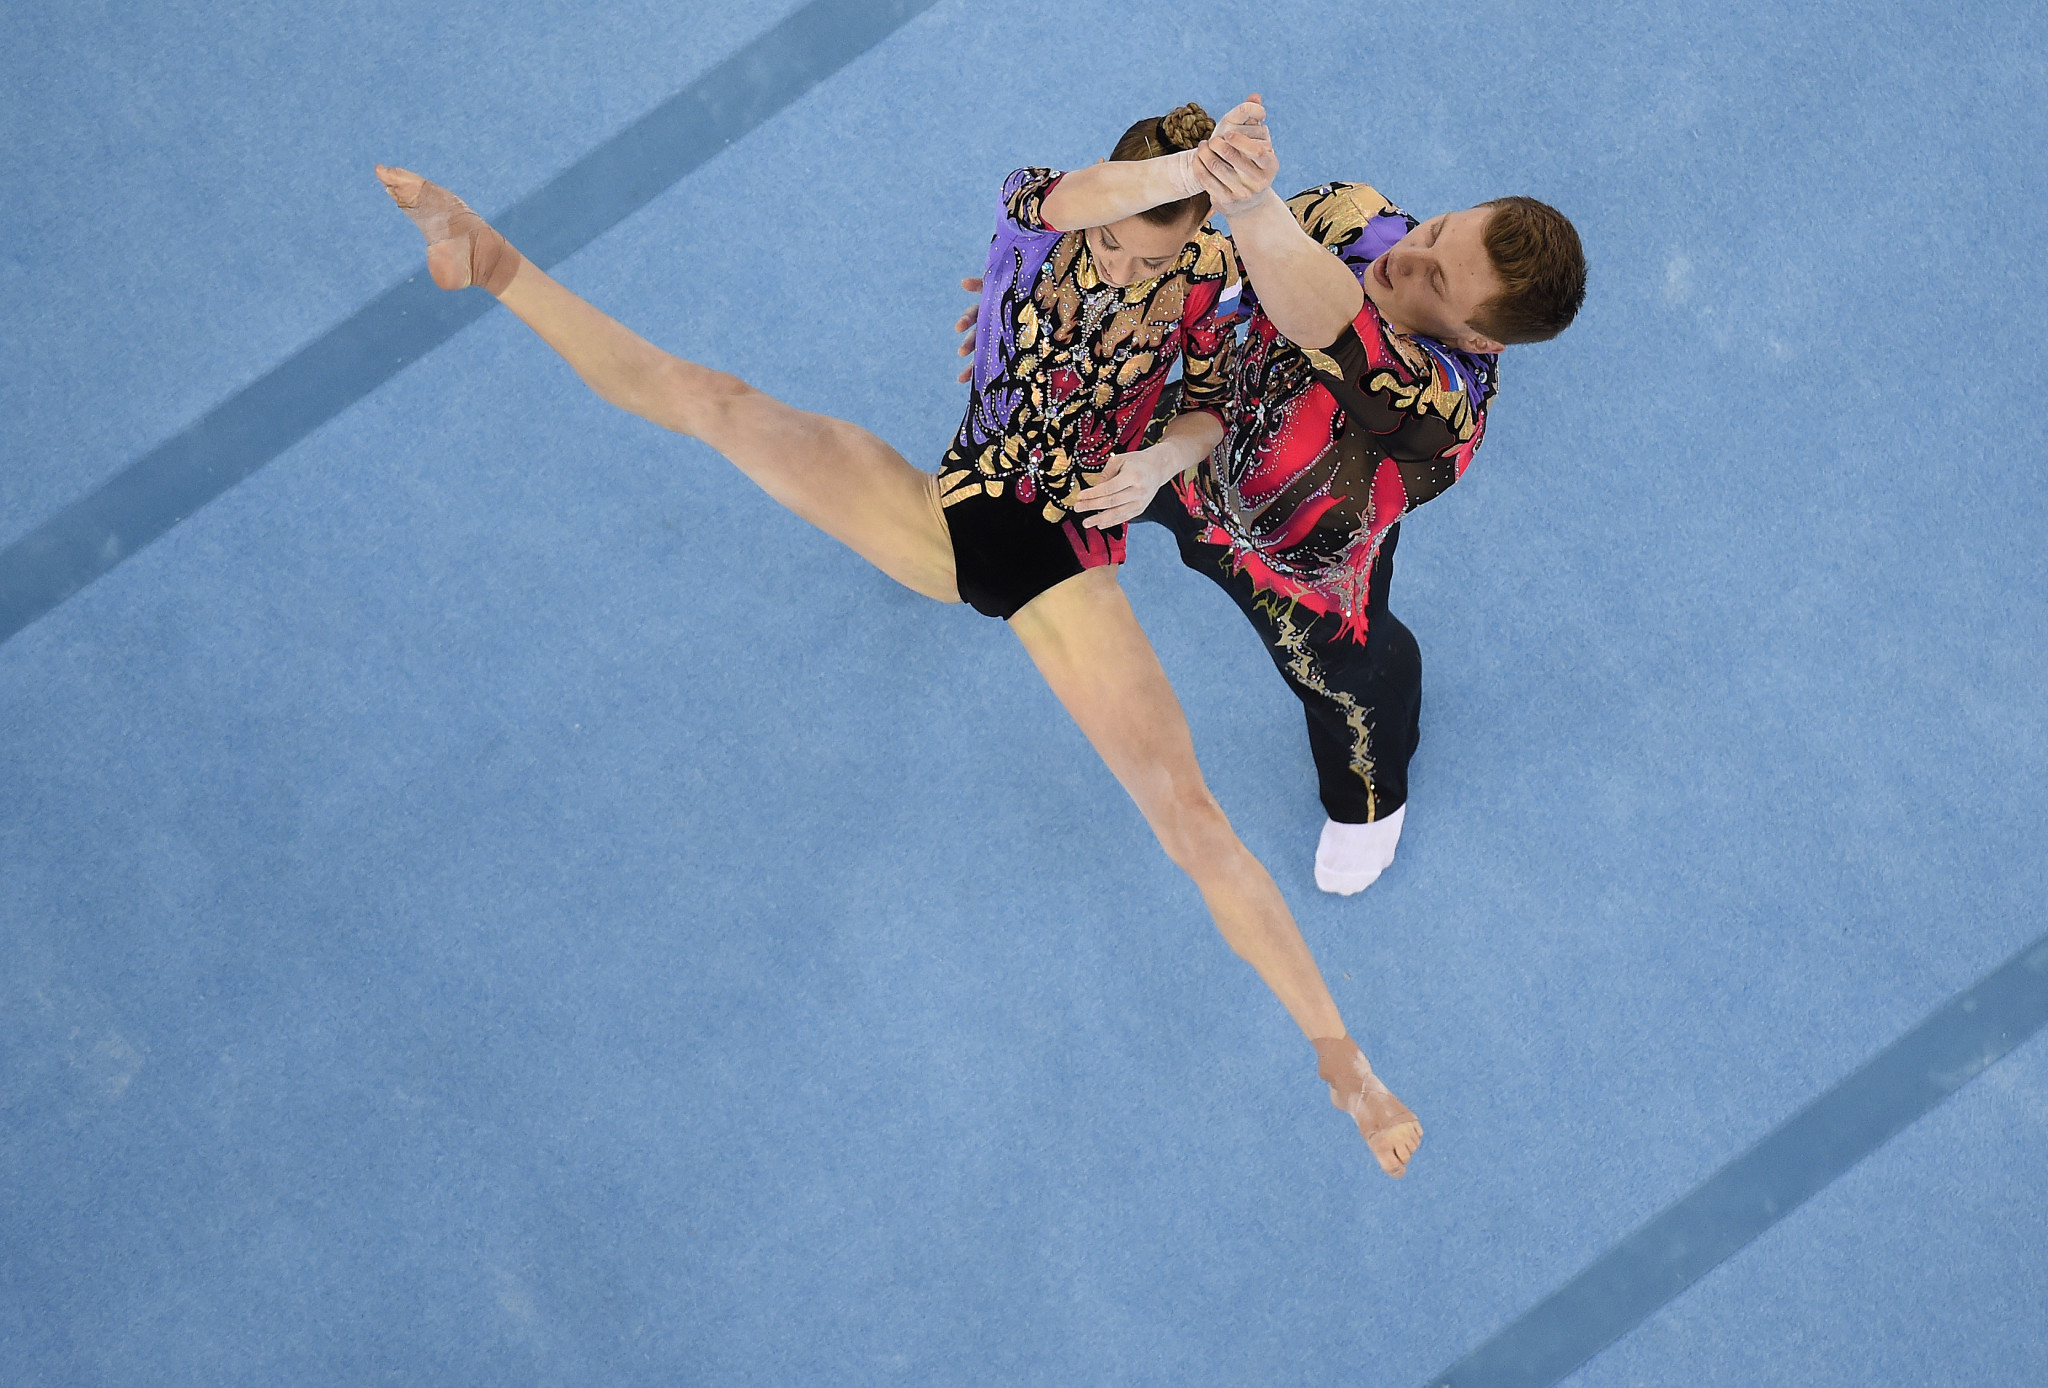 Russian acrobatic gymnastics duo named World Games Athlete of the Year 2018